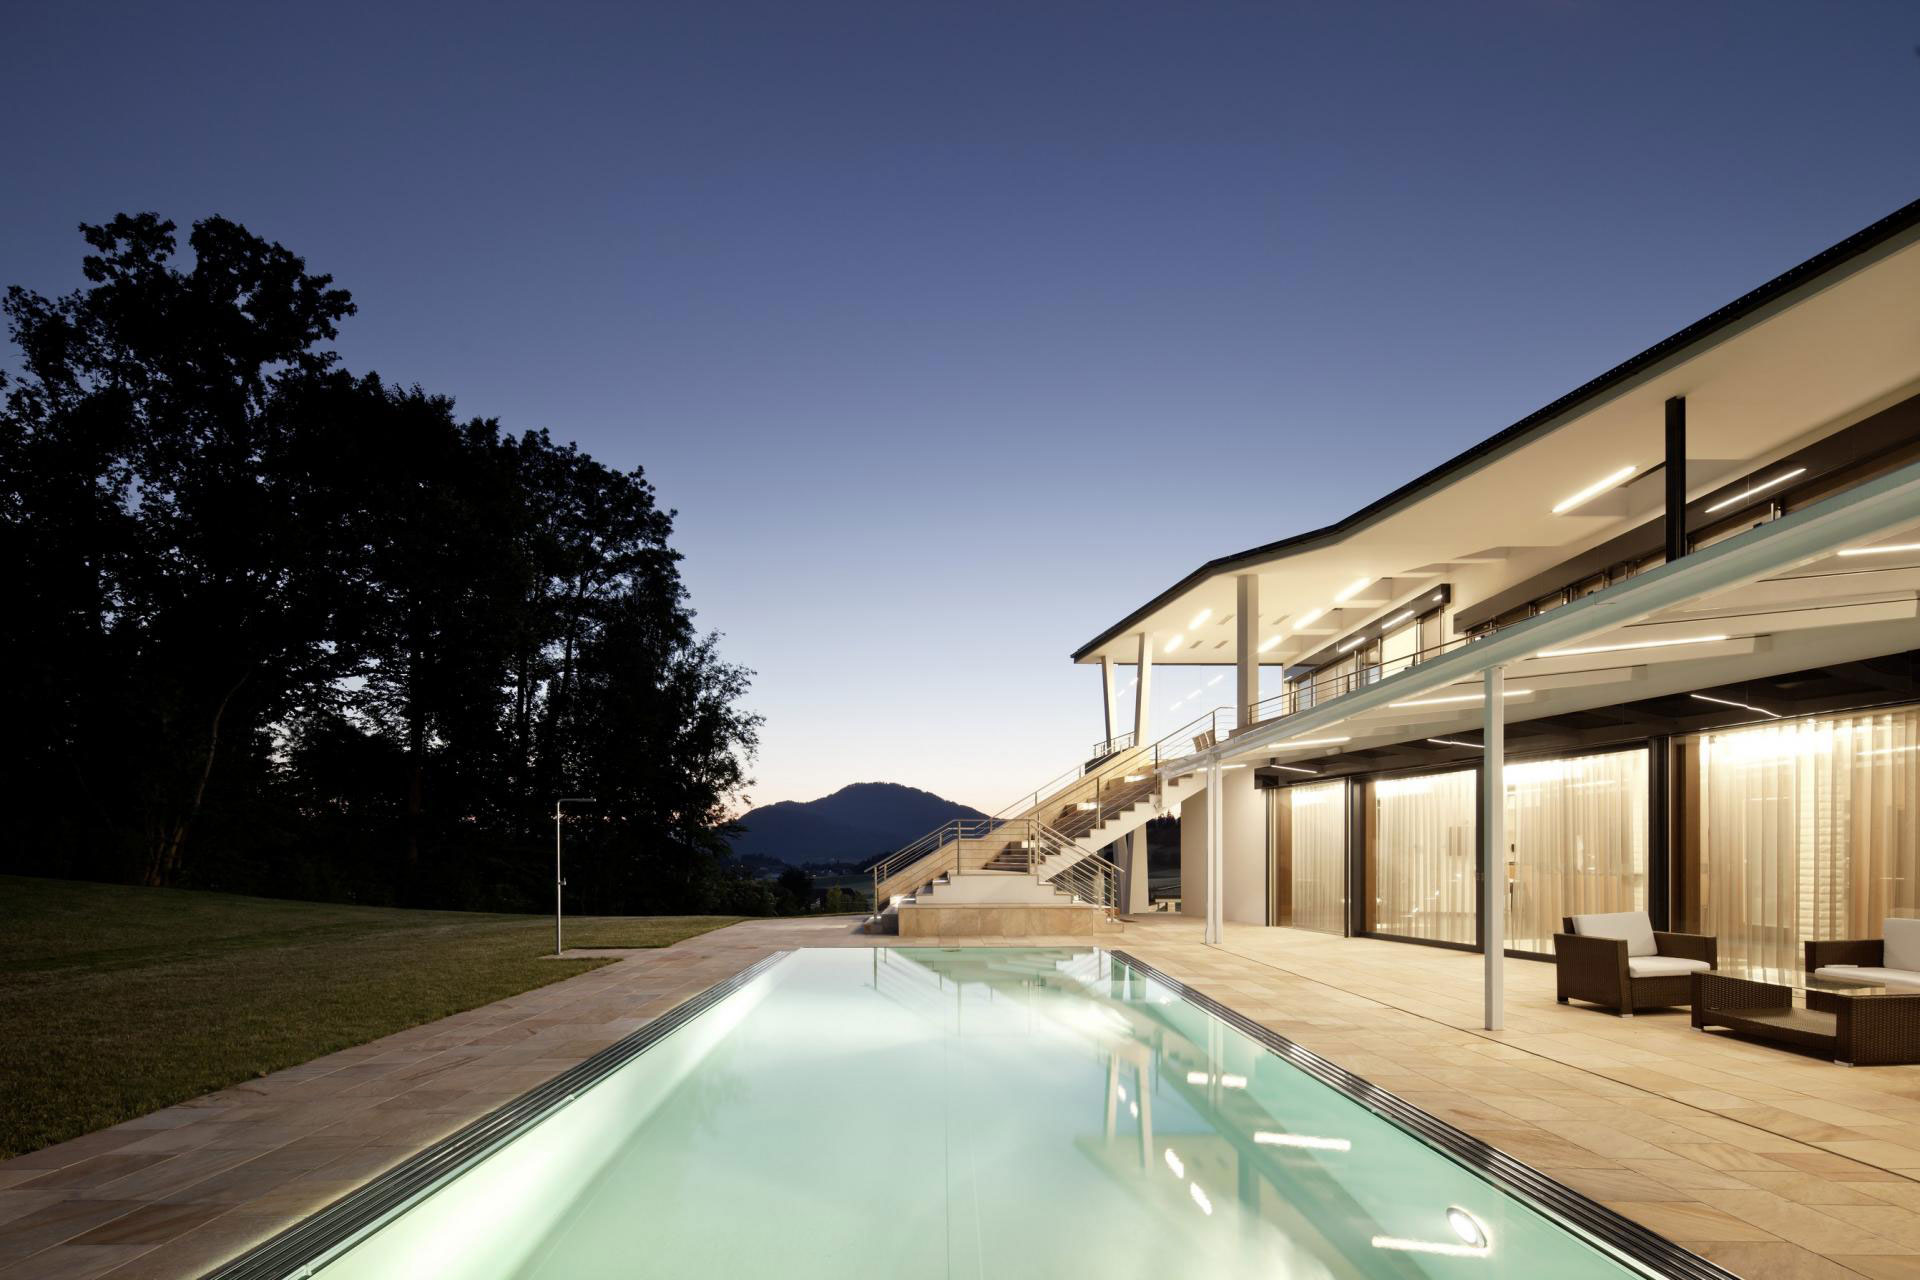 backyard-pool-lighting-ideas-modern-sleek-house-design-with-brown-ceramic-floor-tiles